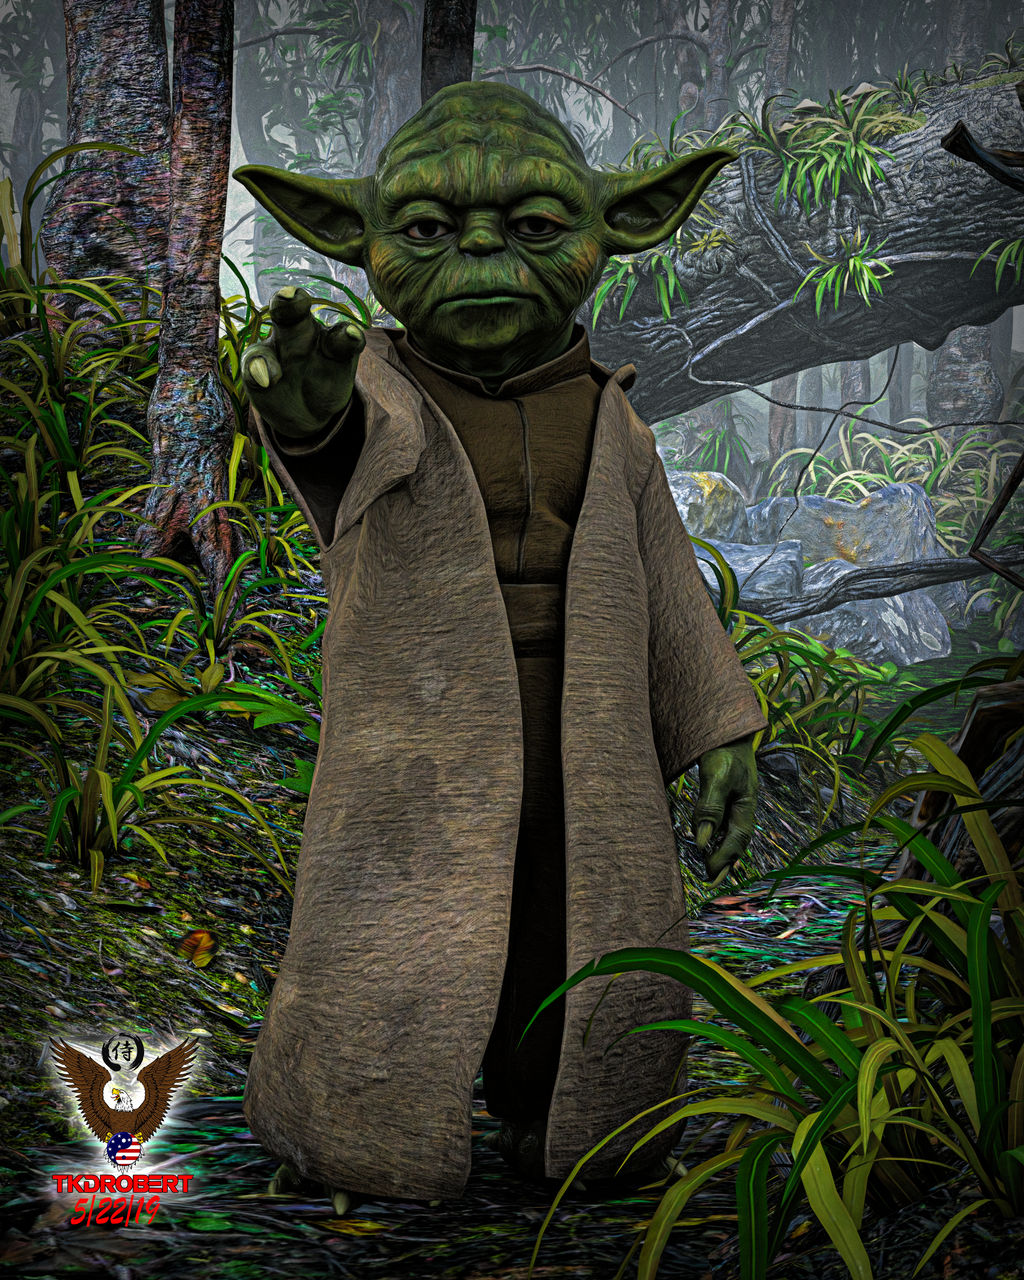 Master Yoda by tkdrobert